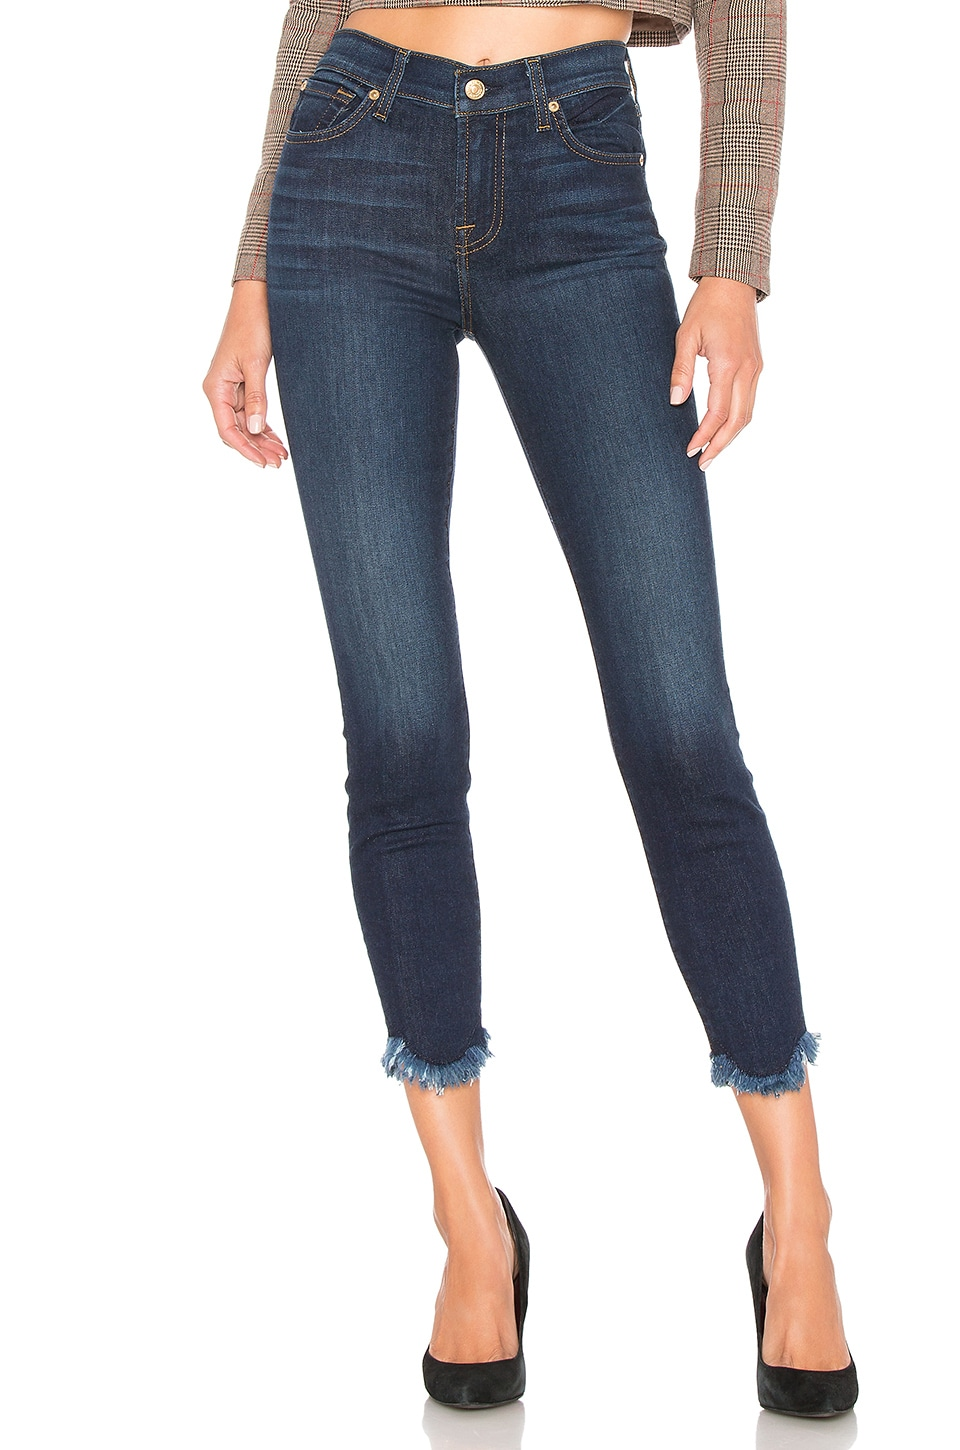 7 For All Mankind Ankle Skinny in Midnight Moon